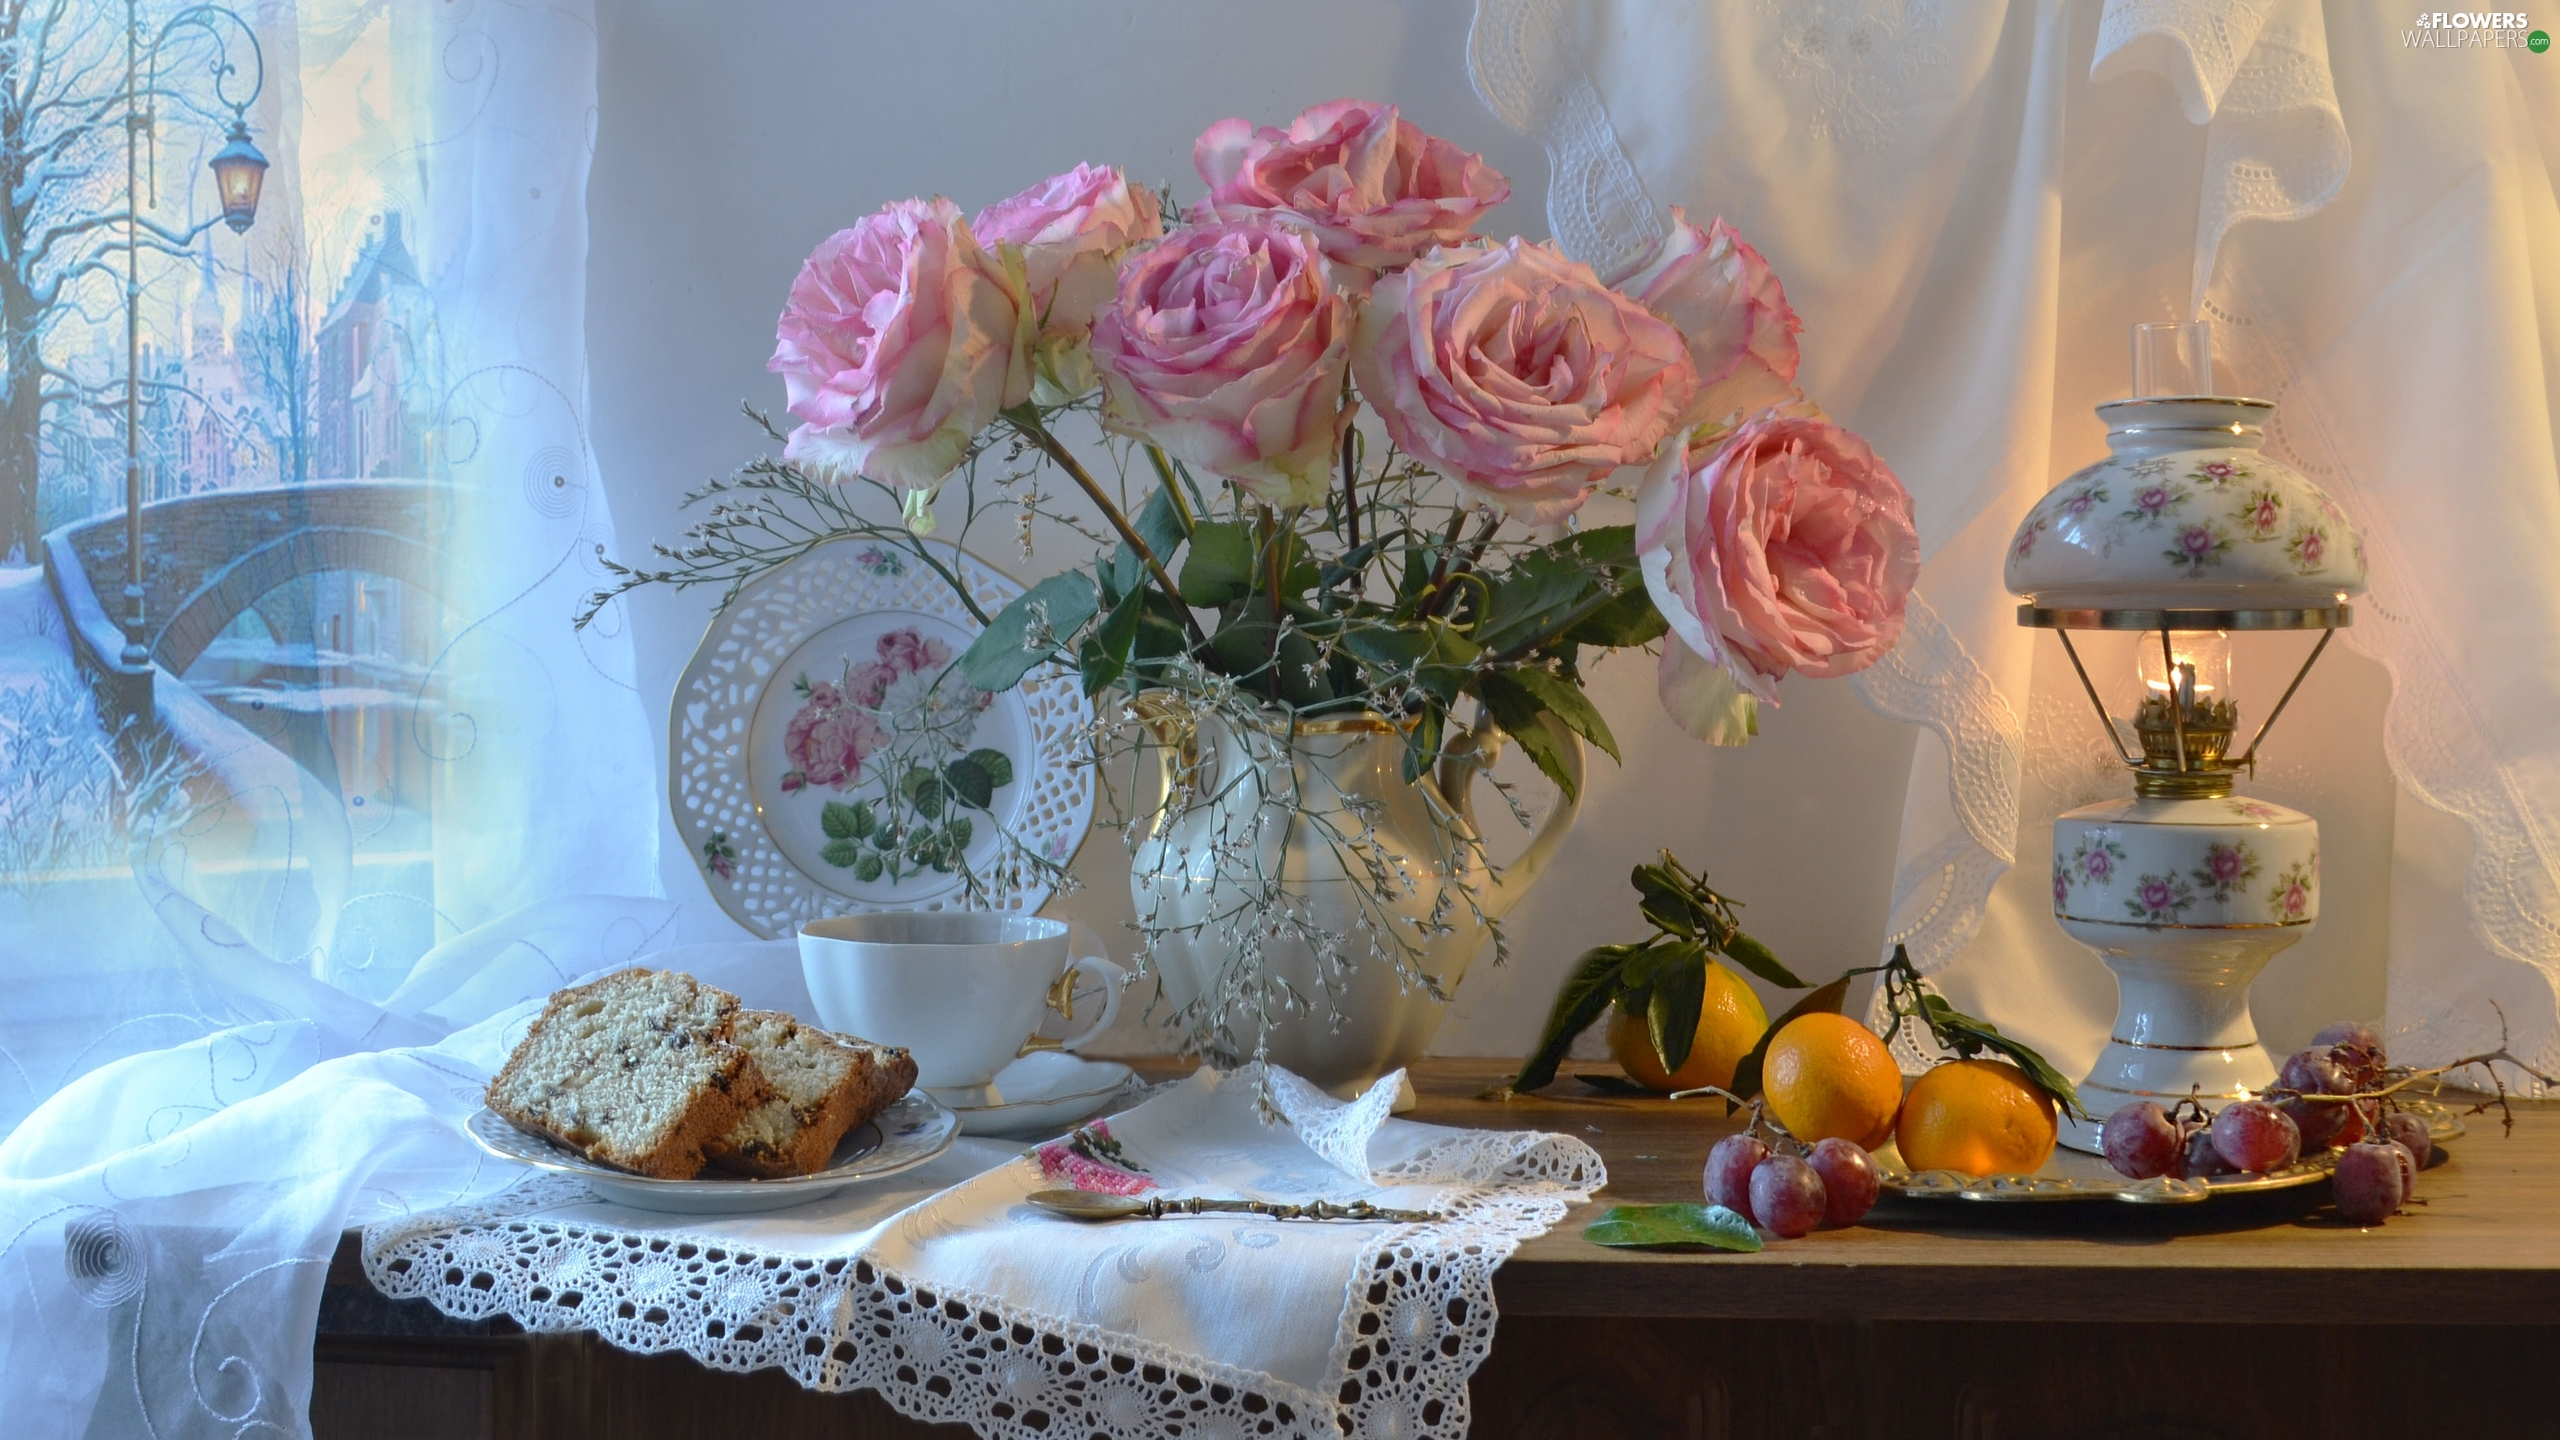 bouquet, jug, Fruits, Lamp, cake, roses, Pink, Plates